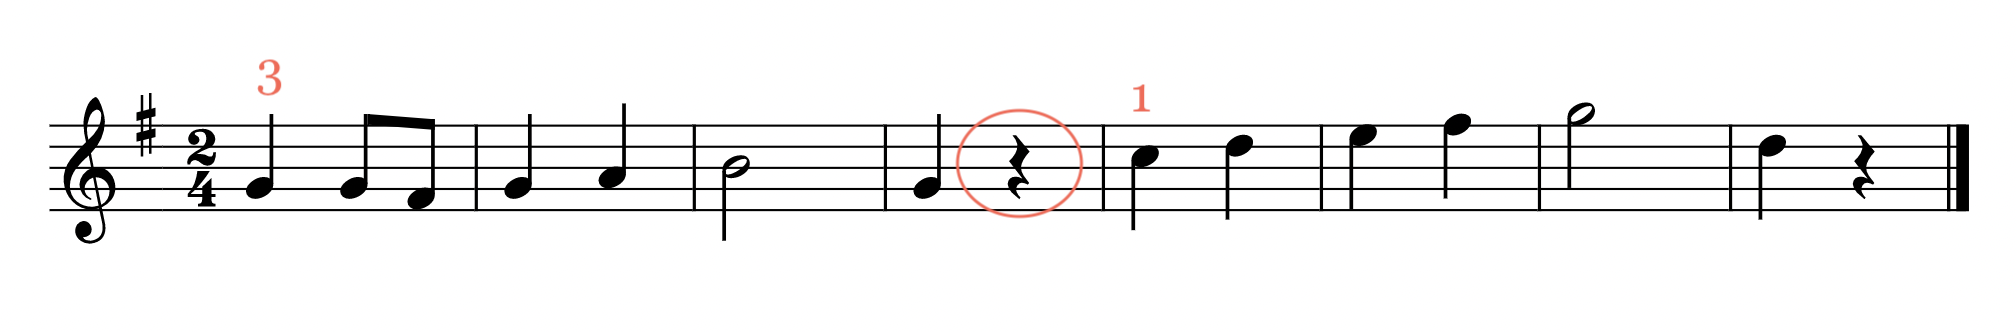 using rests to change hand position